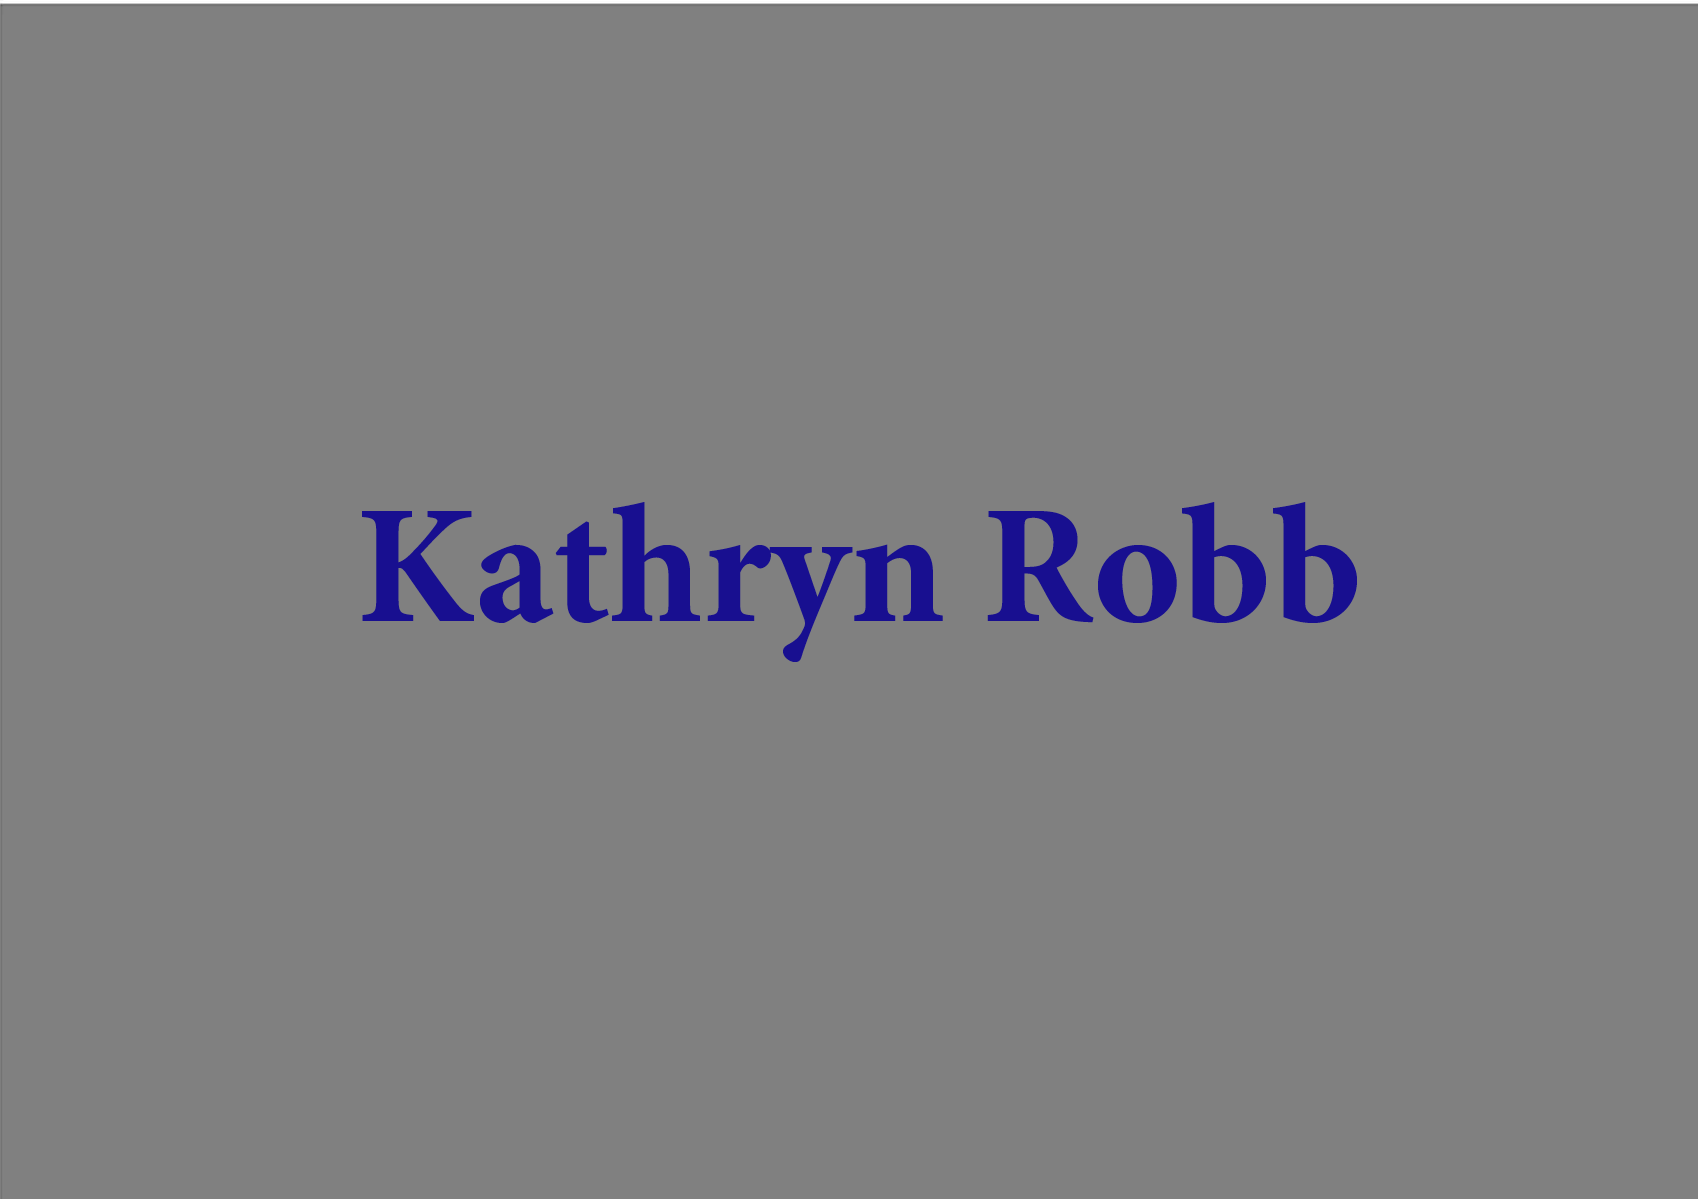 kahtryn robb.png